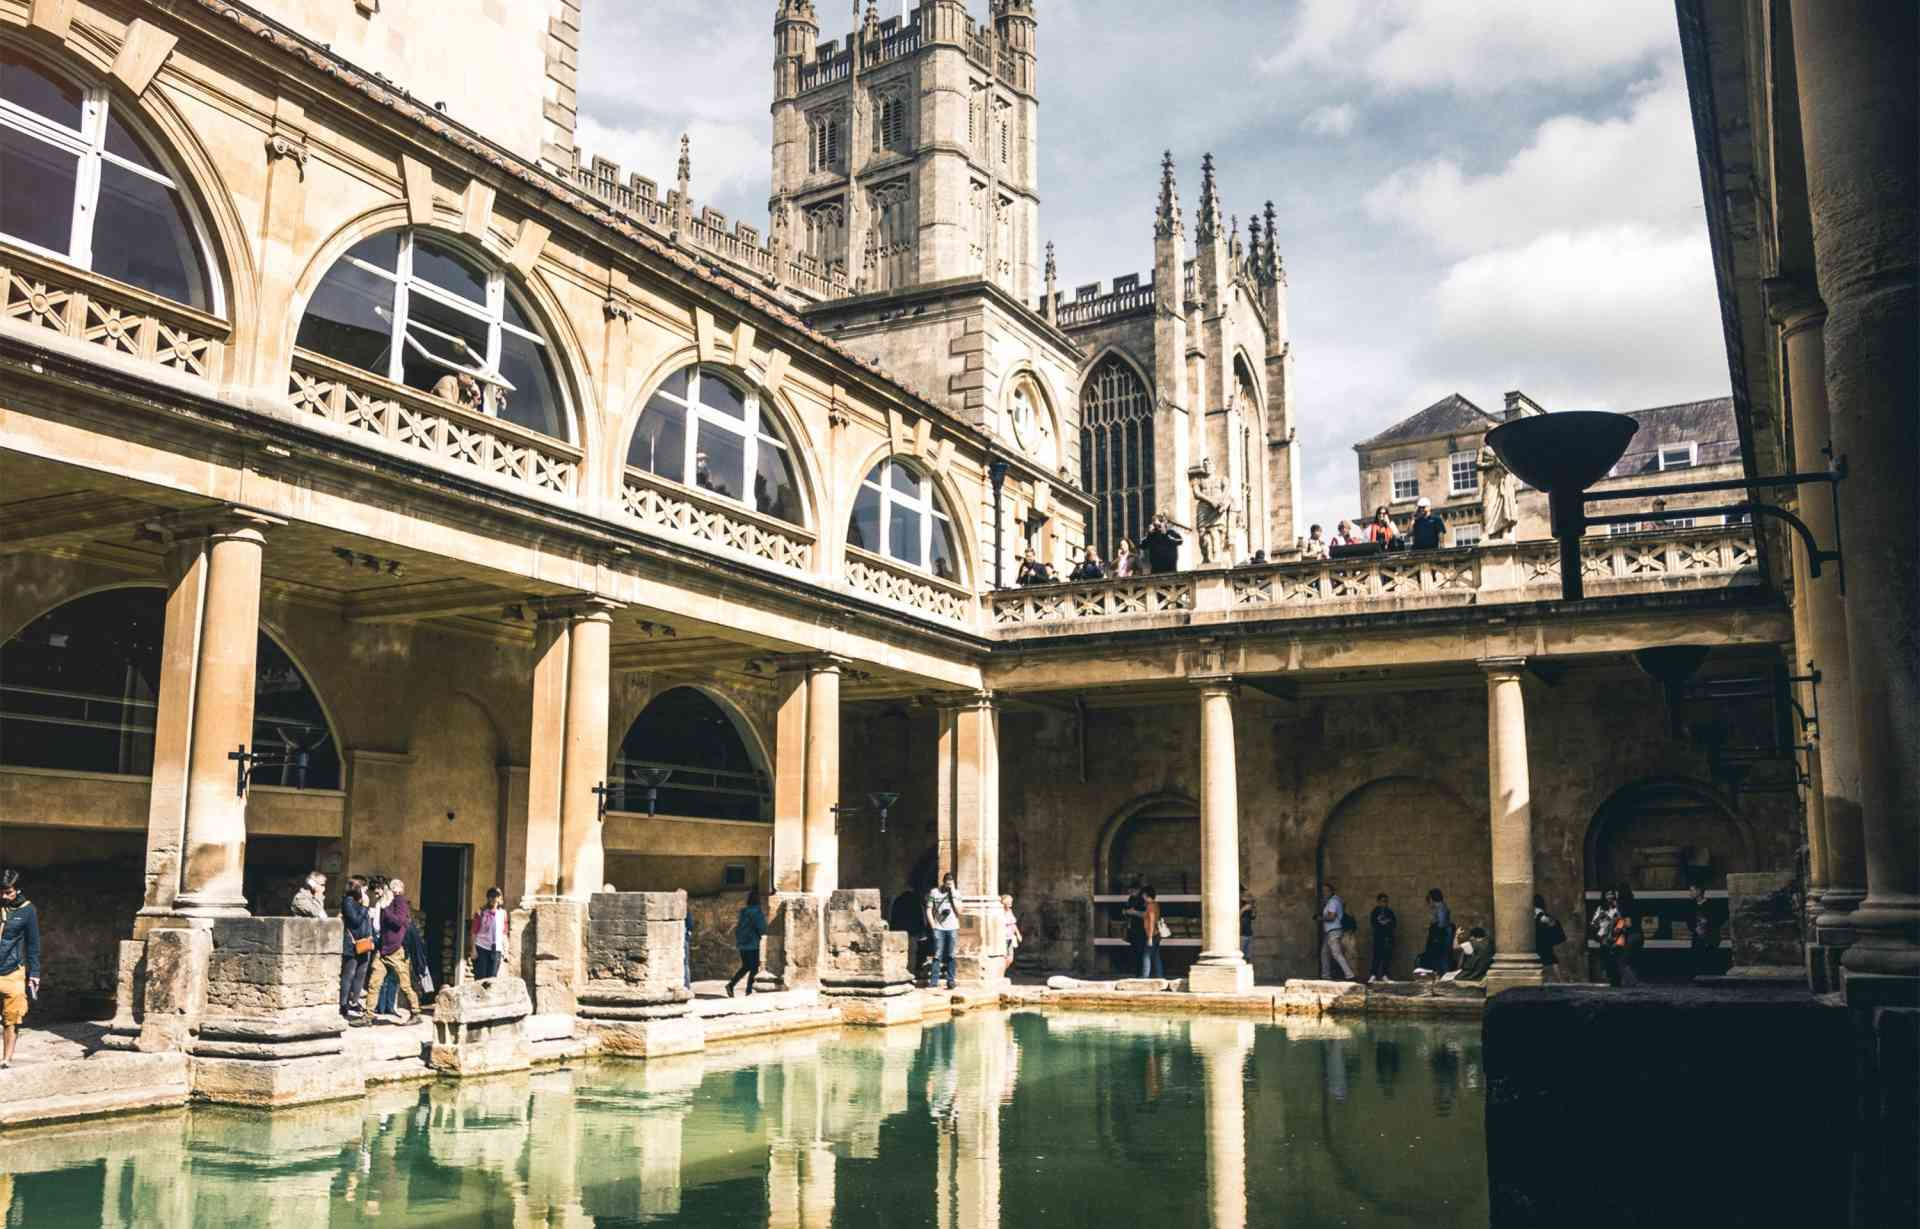 Bath, England by Jose Llamas/Unsplash